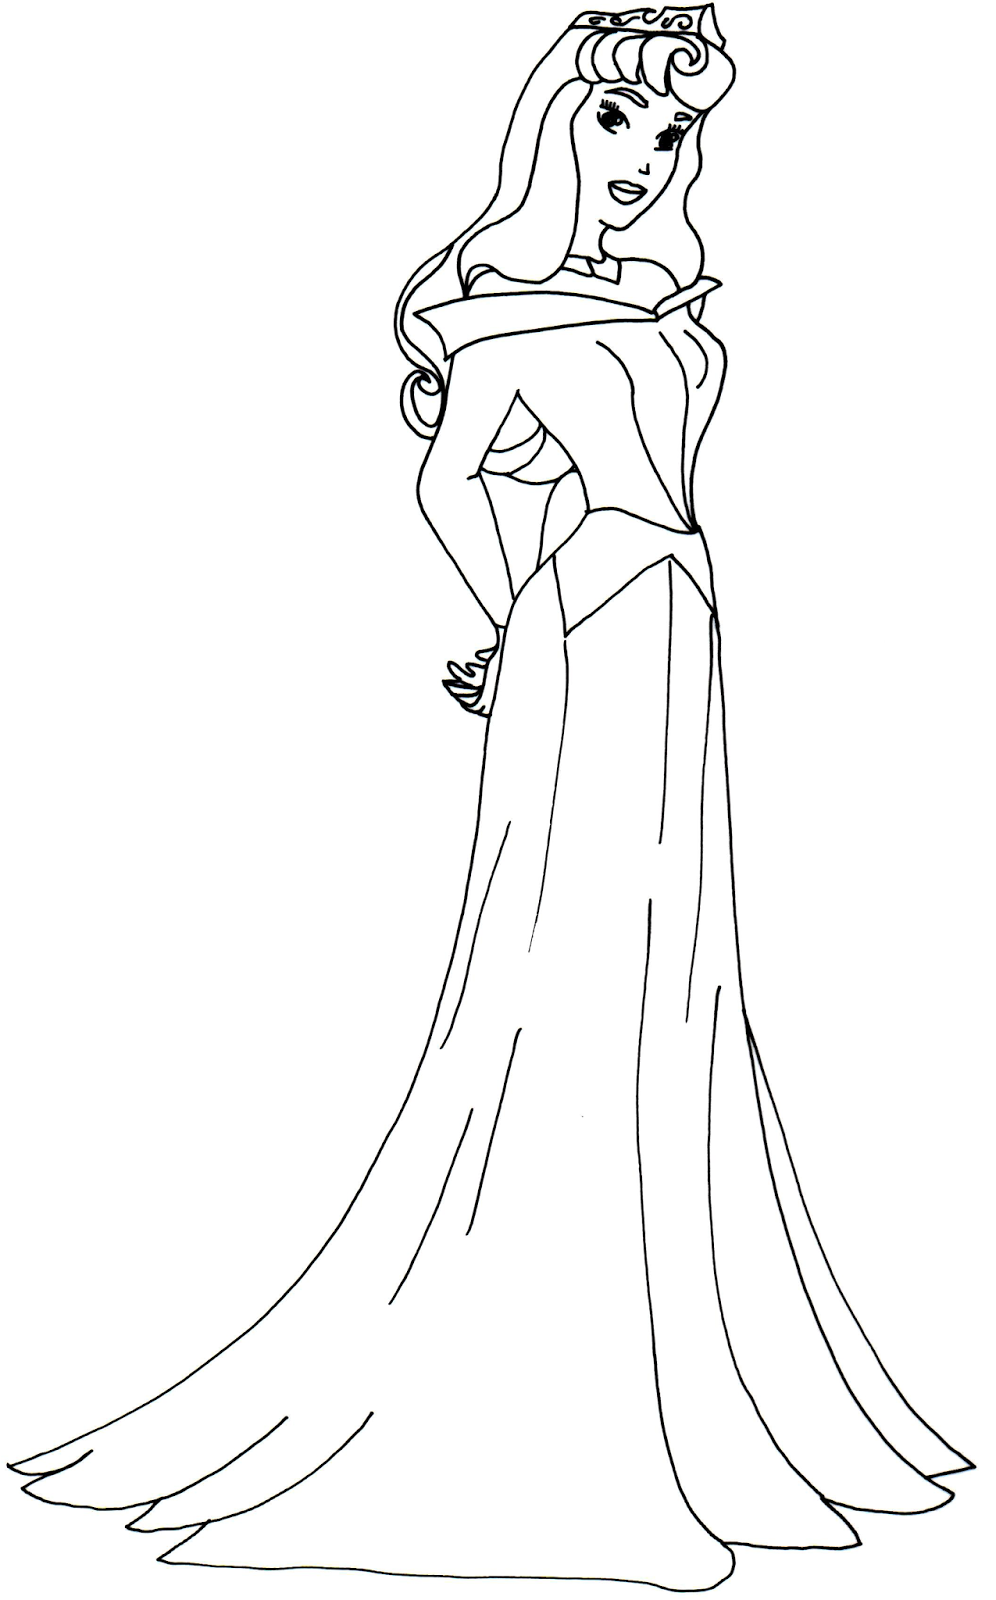 princess aurora sofia the first coloring page